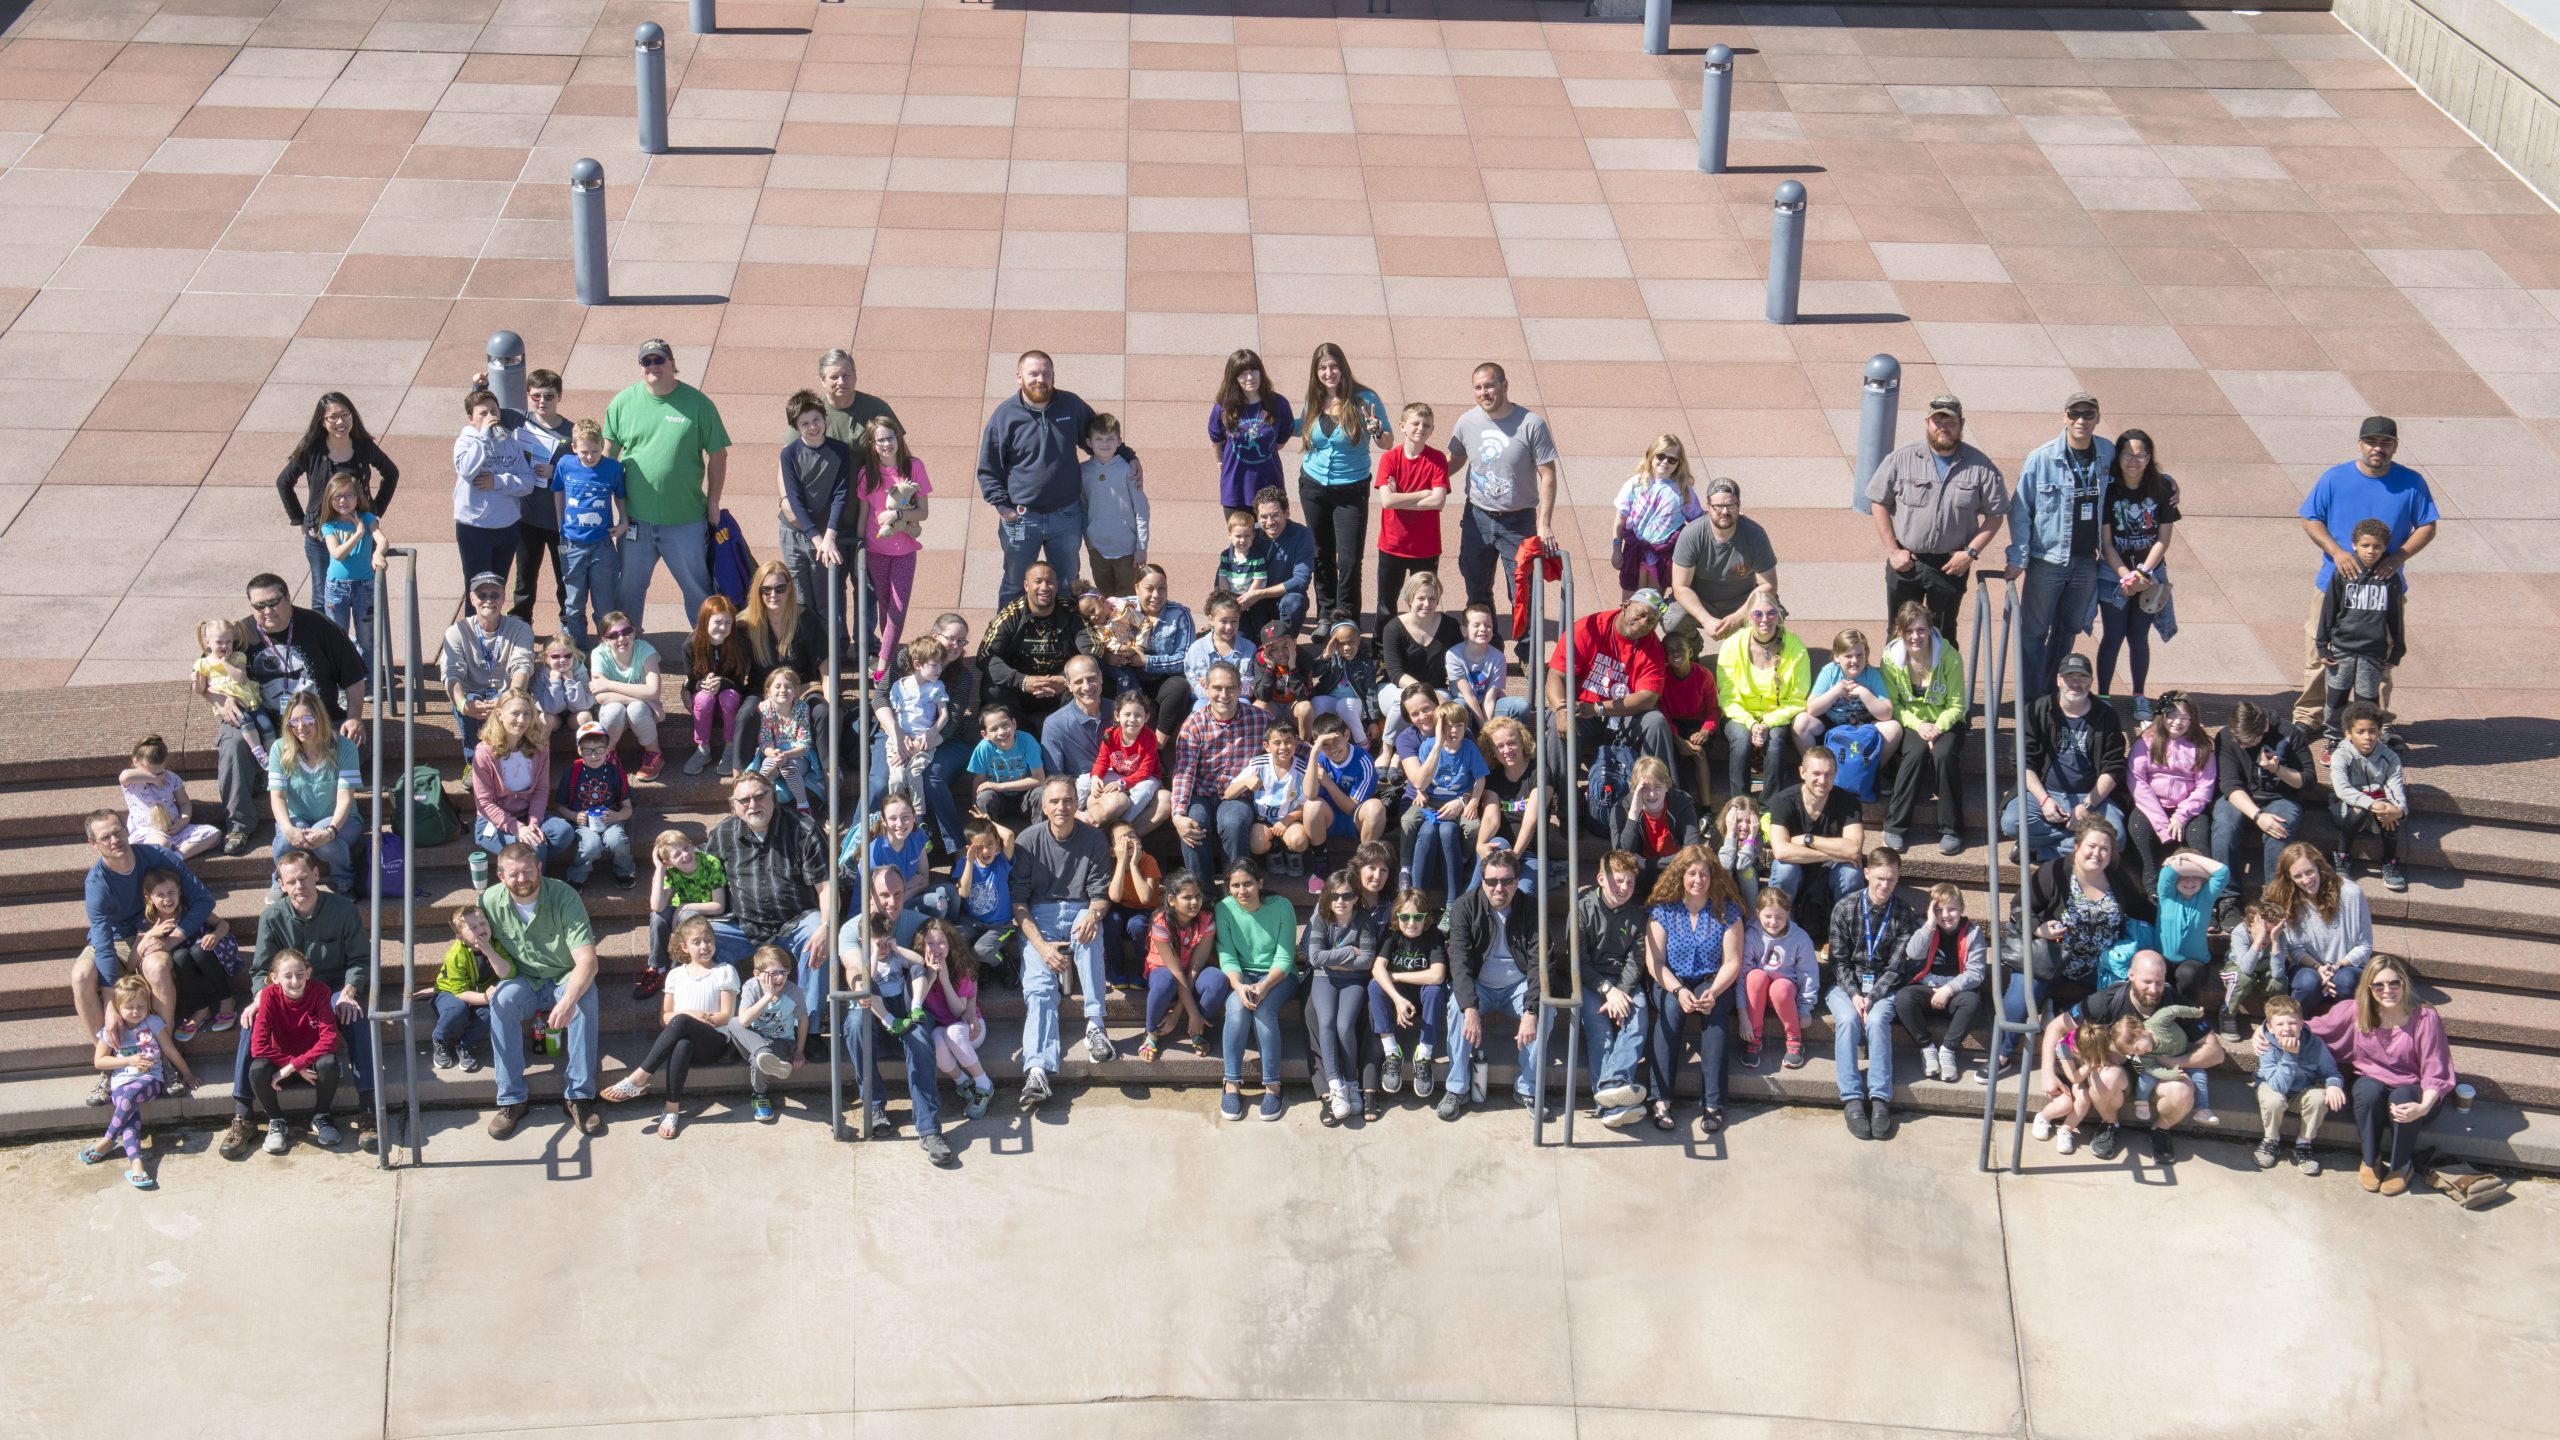 Fermilab employees, users and their kids showed up for DASTOW on April 25. Relive the memories. people, lab life Photo: Reidar Hahn